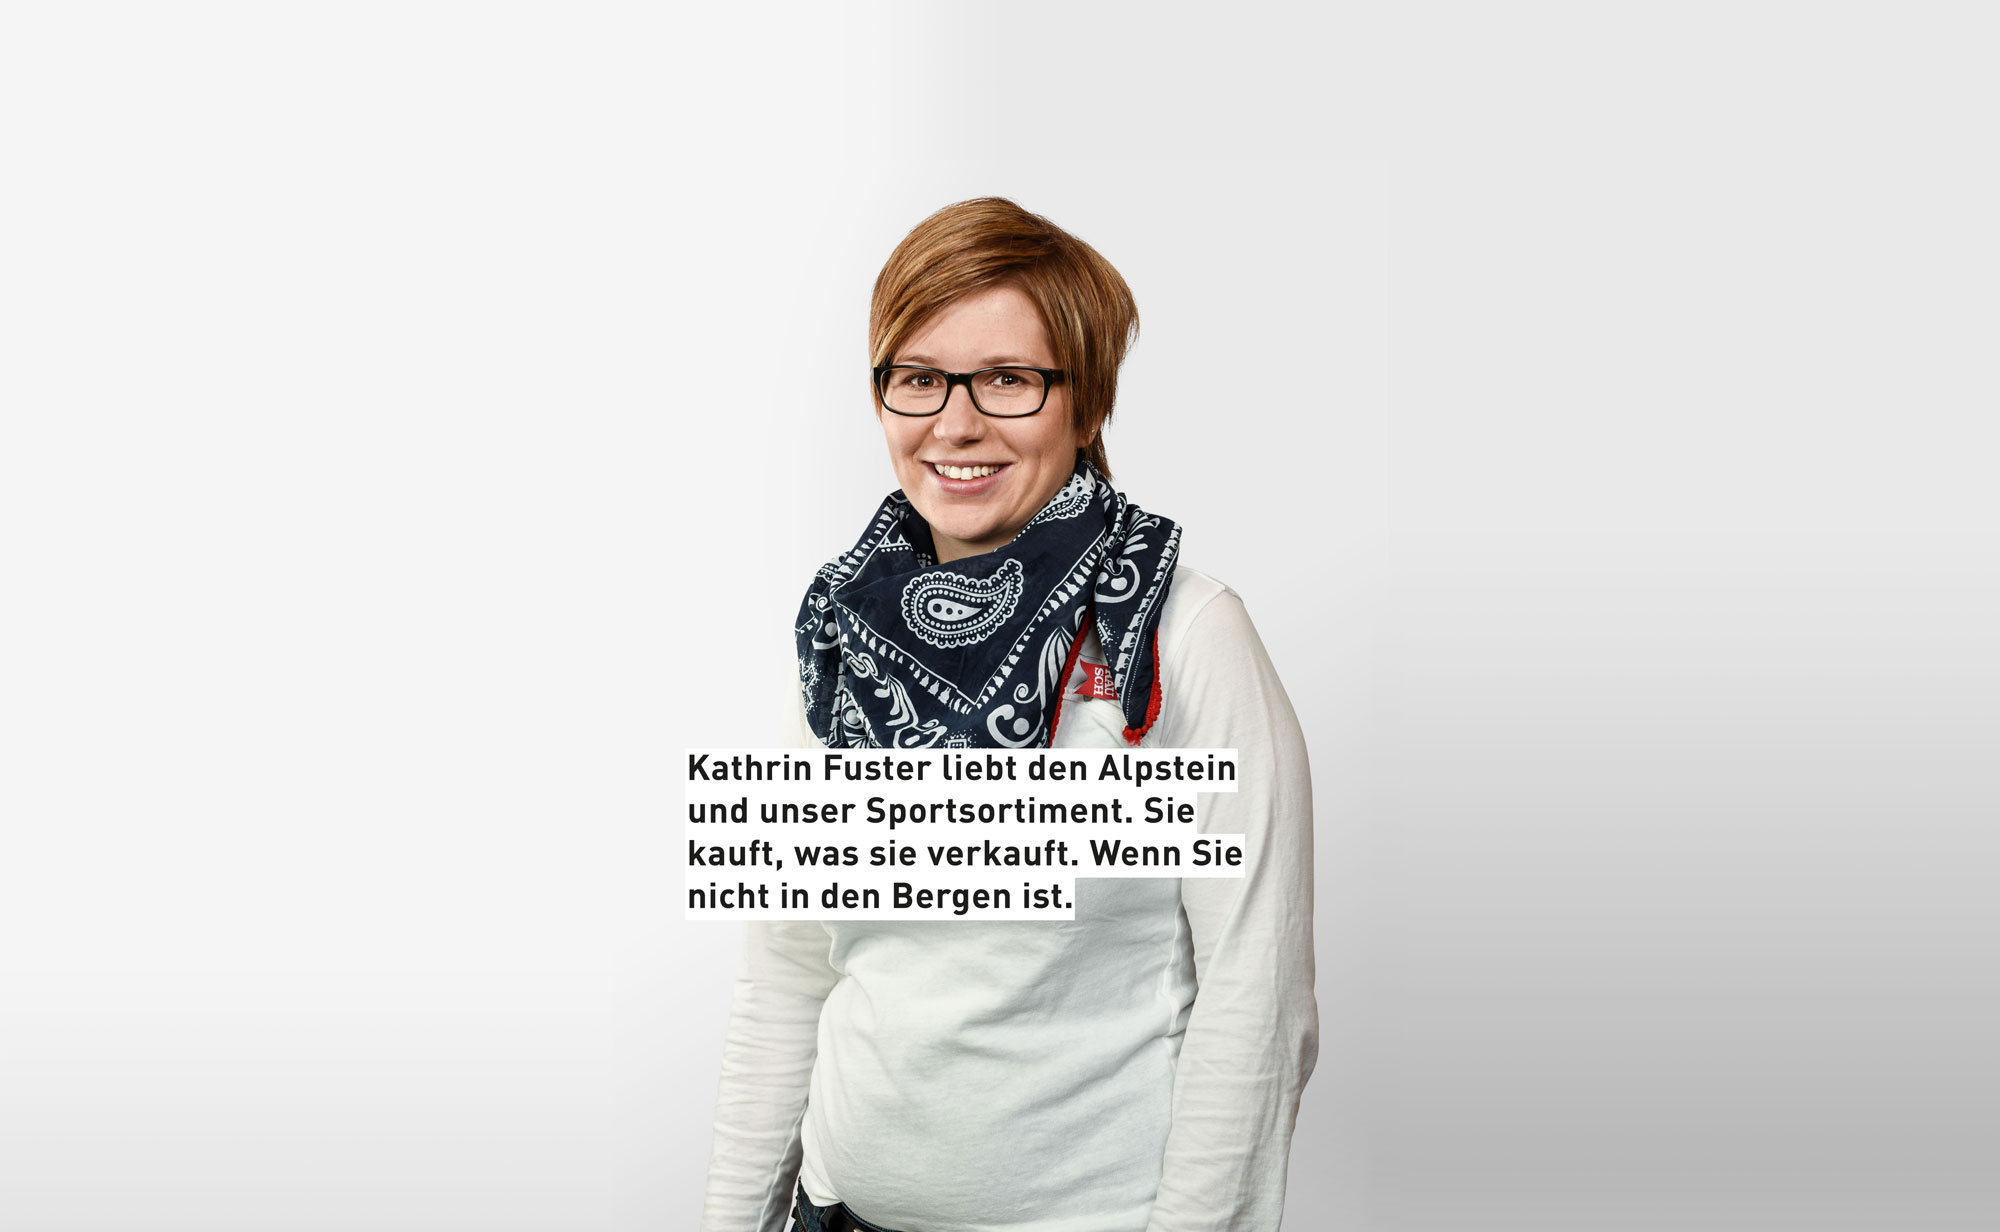 Kathrin Fuster